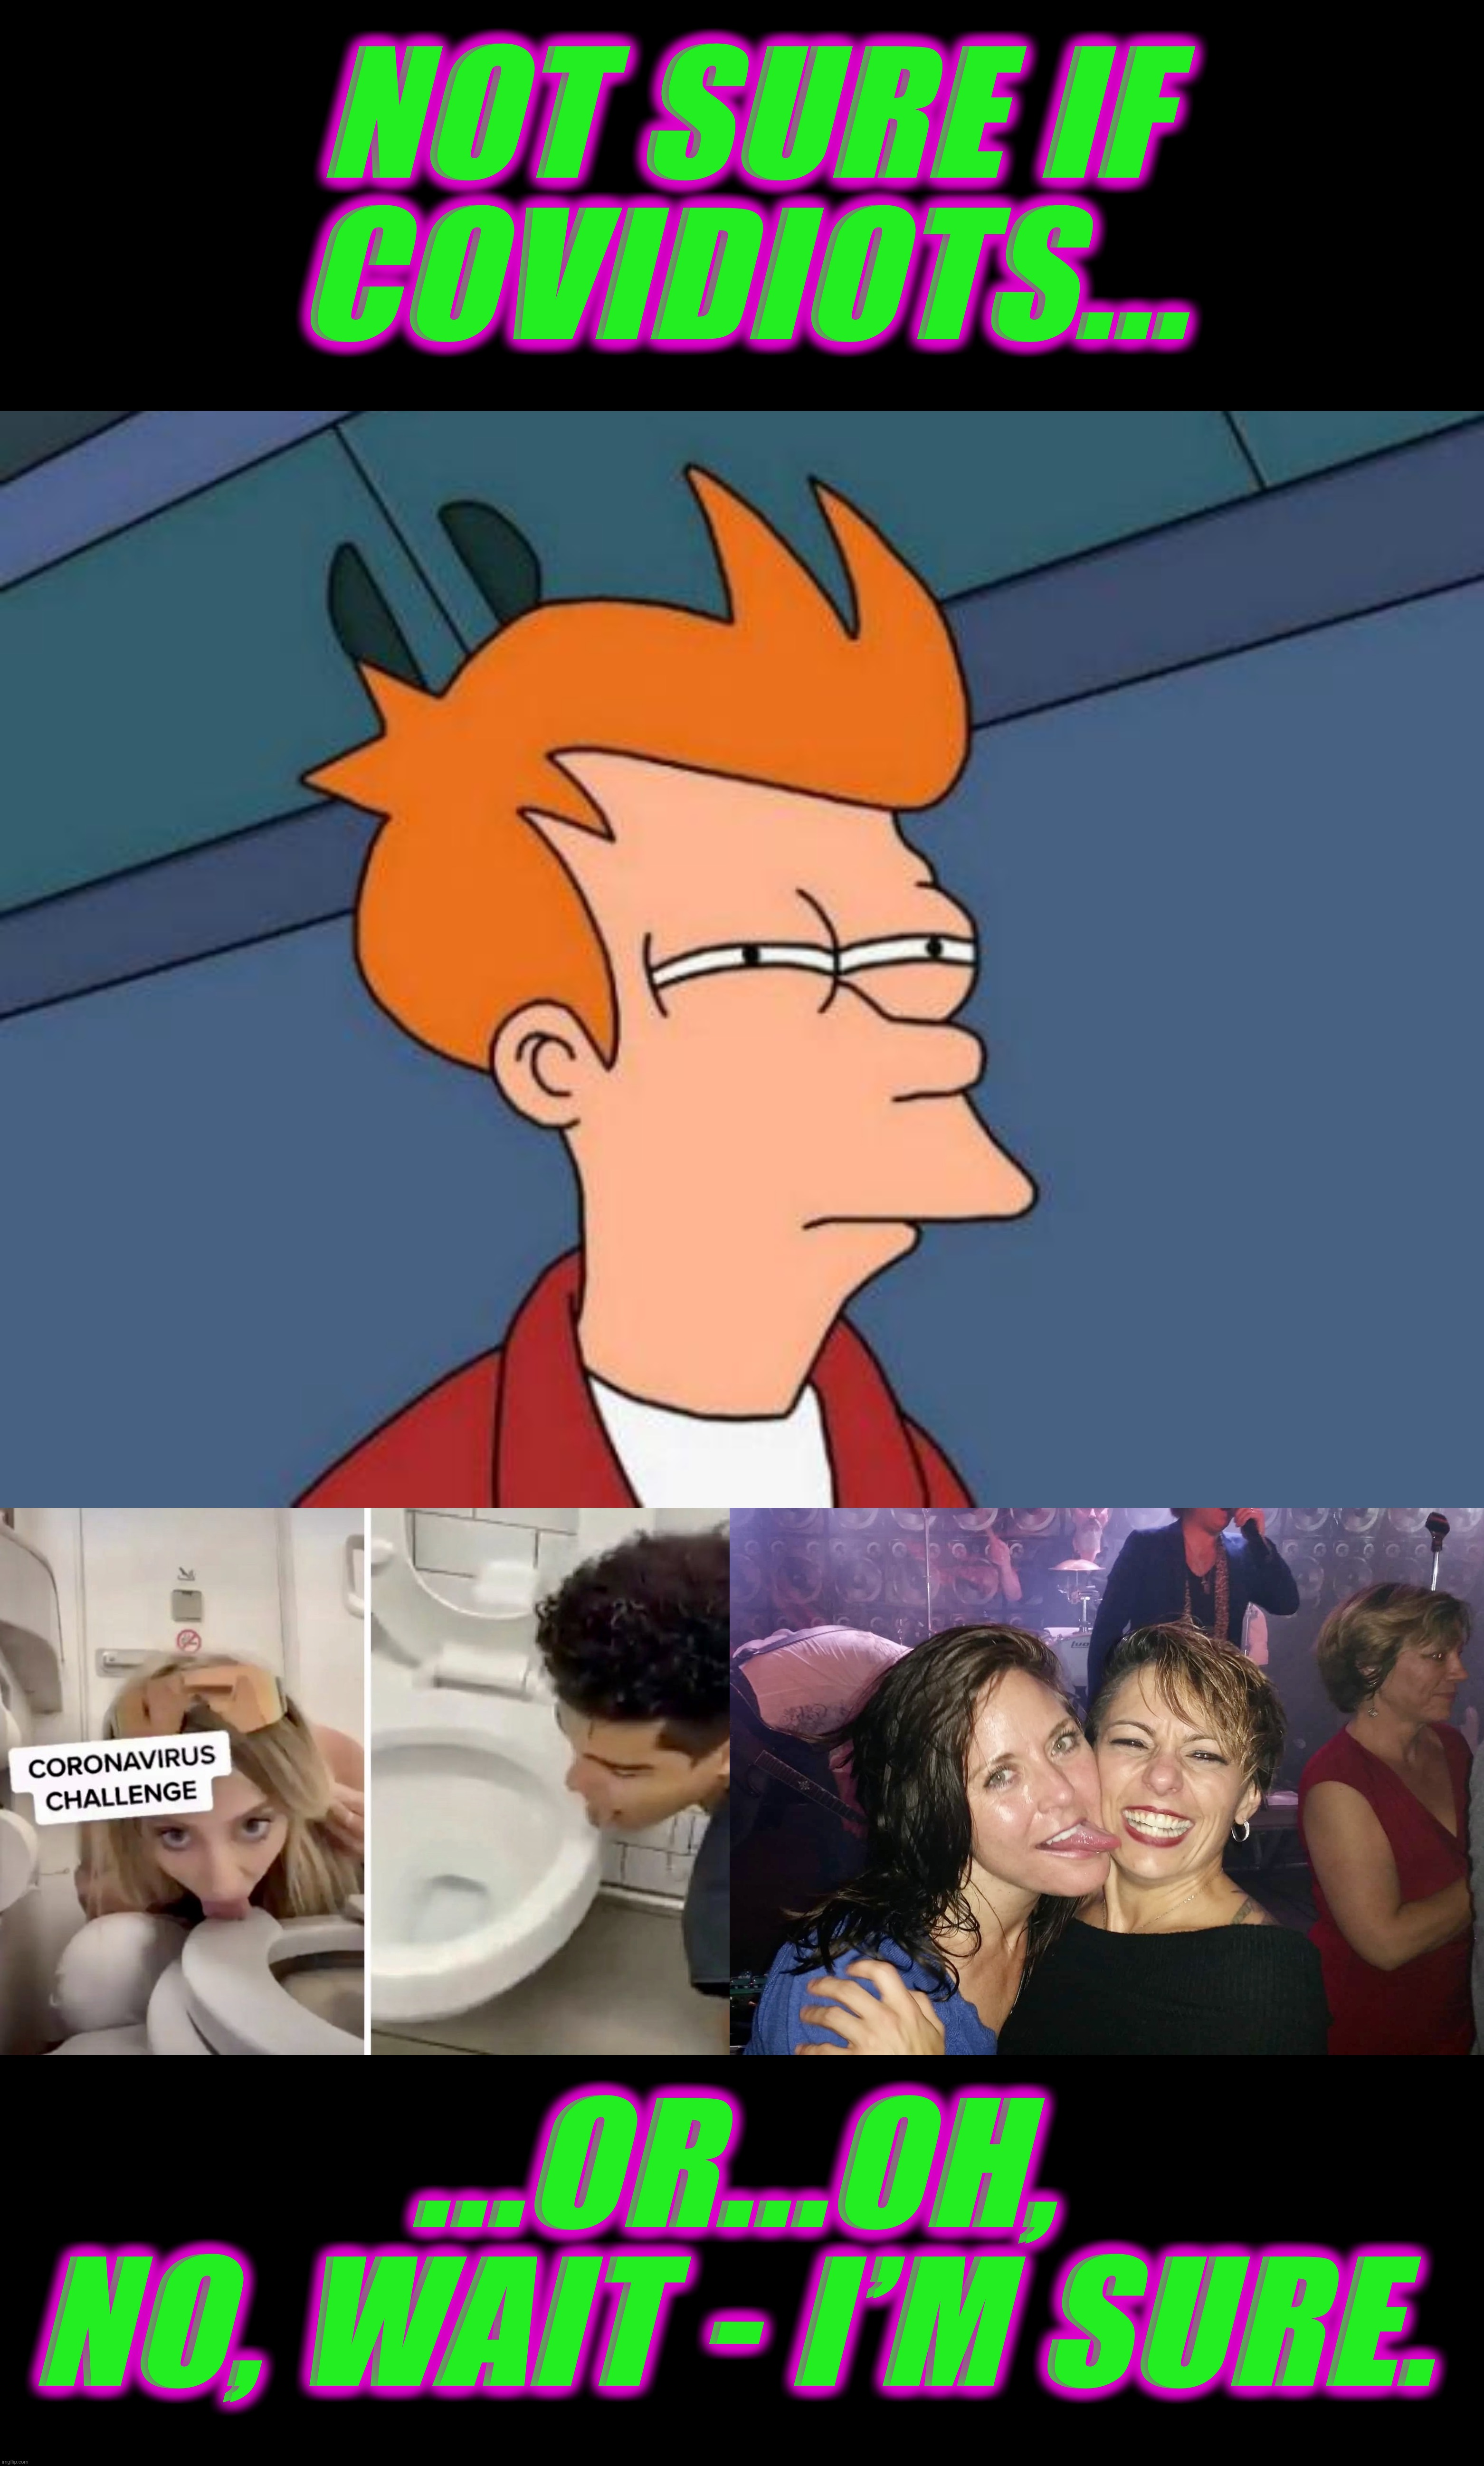 If Fry can spot covidiots... |  NOT SURE IF COVIDIOTS... ...OR...OH, NO, WAIT - I'M SURE. | image tagged in memes,futurama fry,covidiots,fry not sure,coronacrazy,covidiot | made w/ Imgflip meme maker